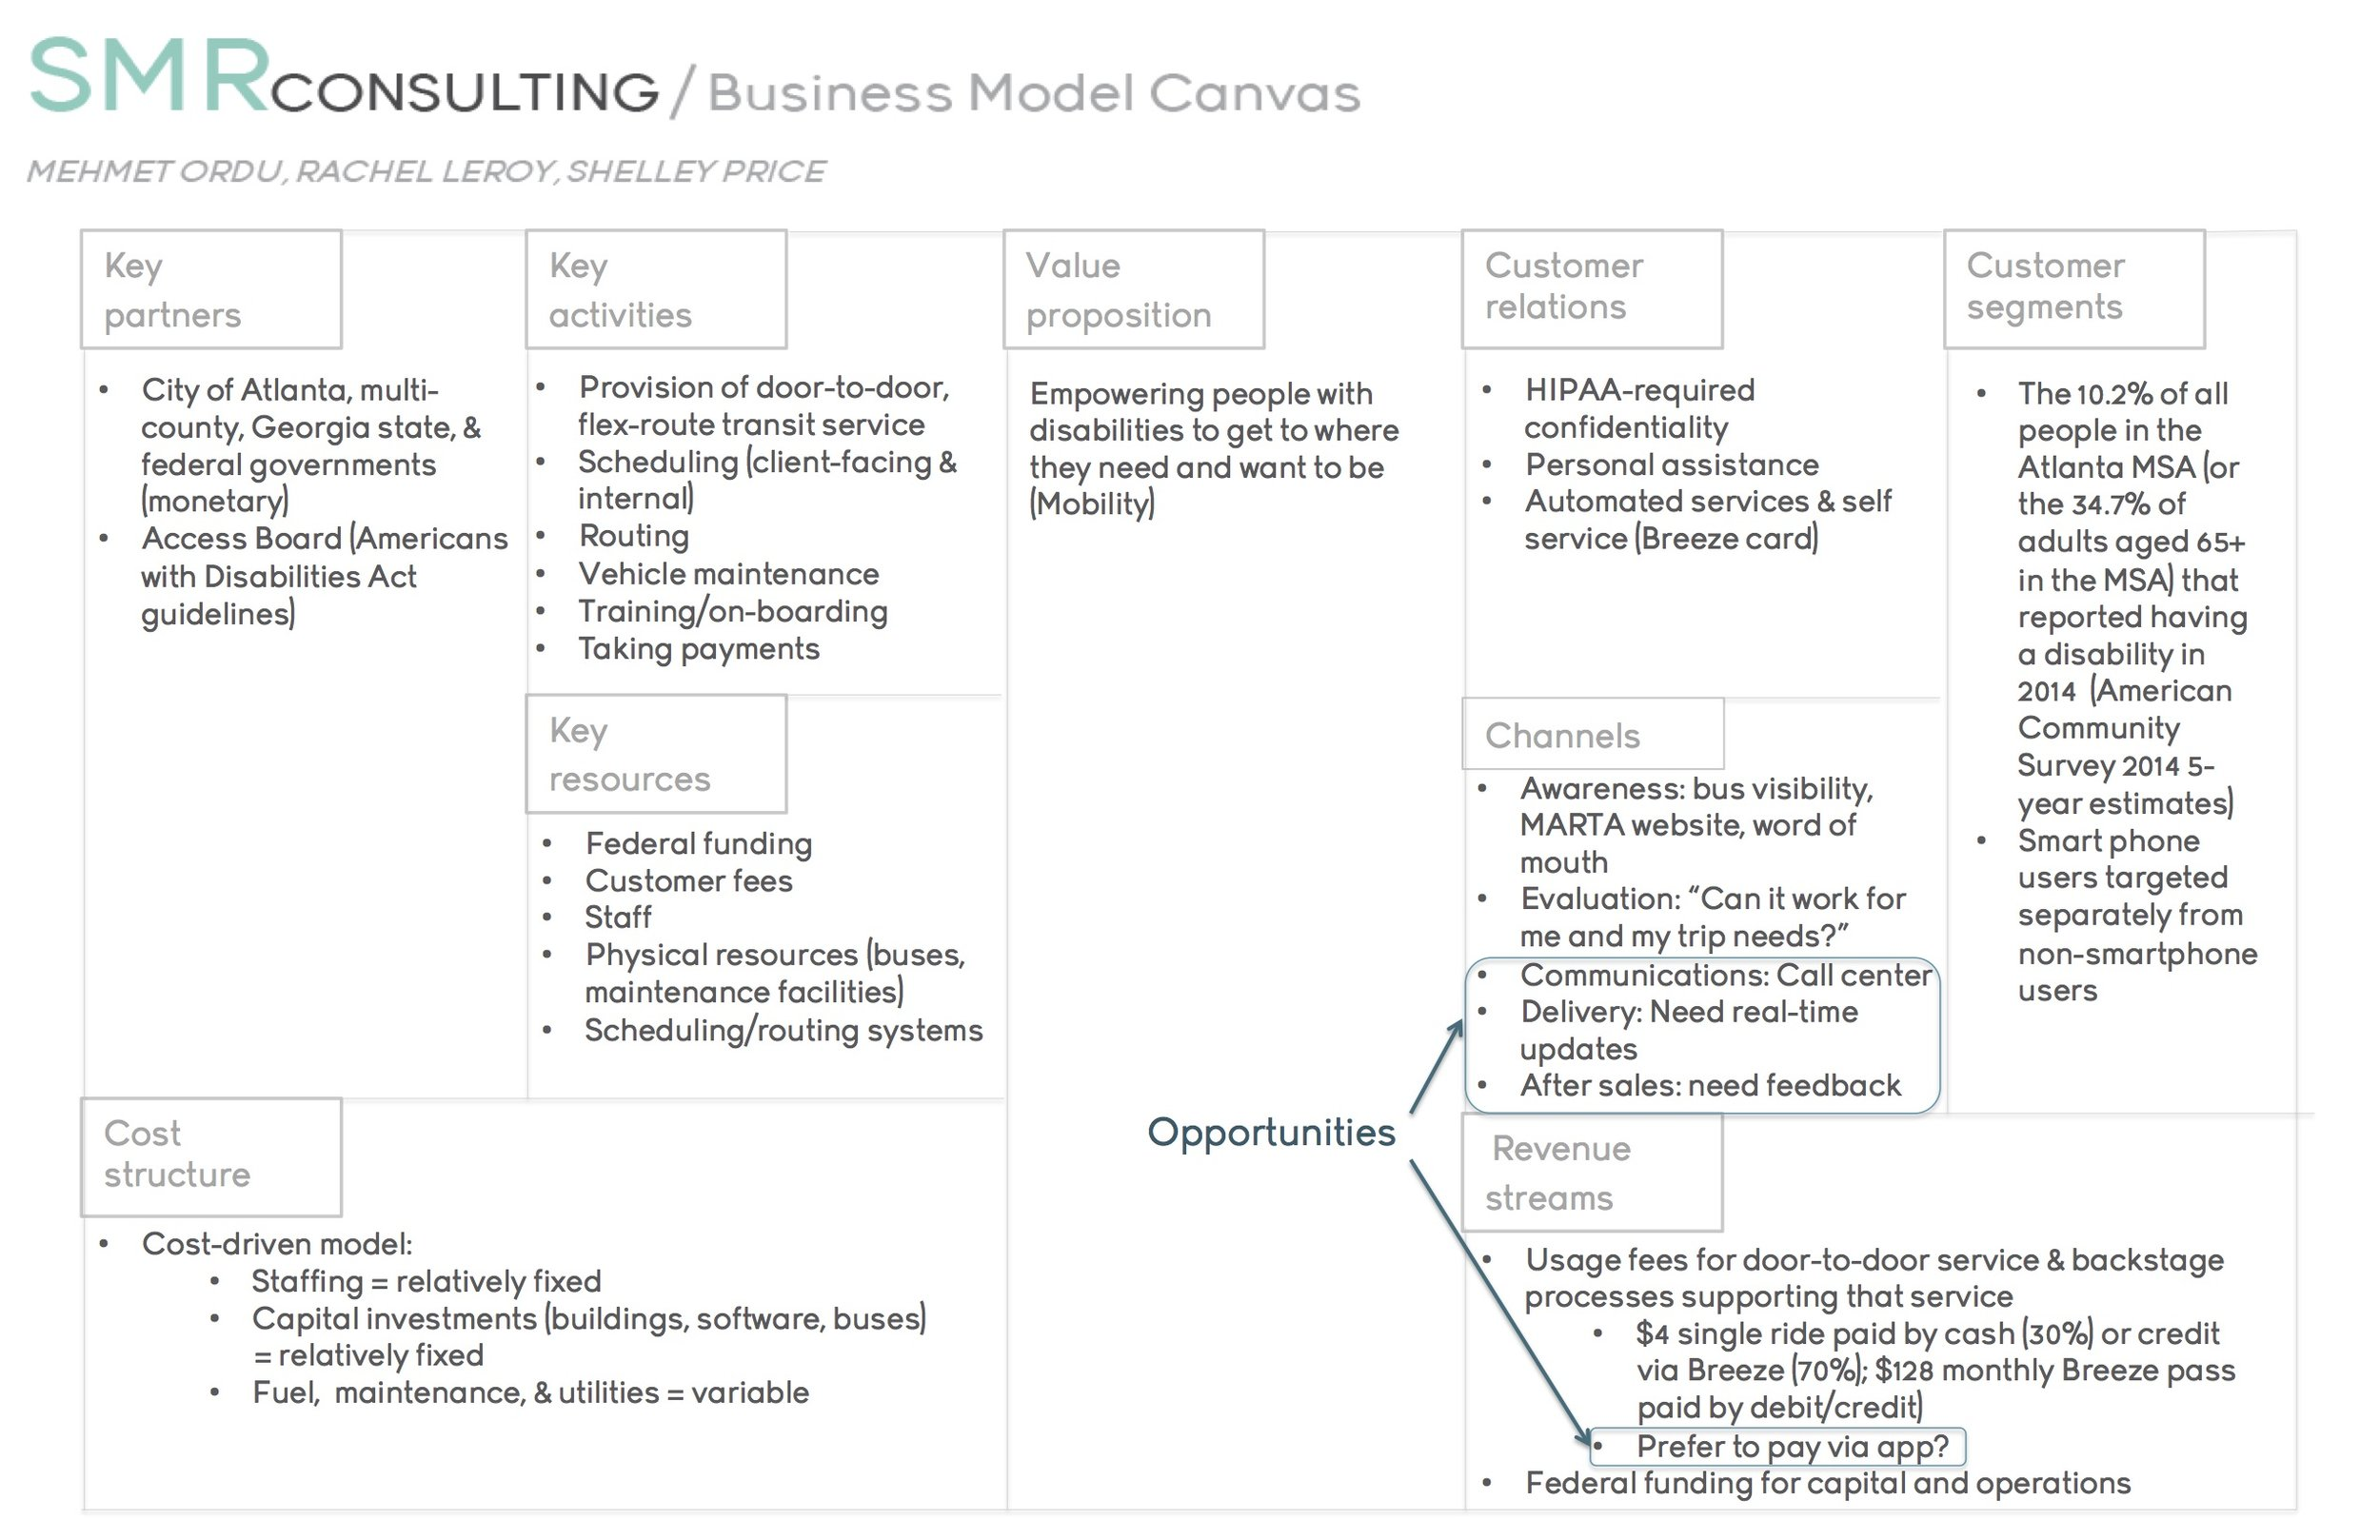 Business Model Canvas for MARTA Mobility